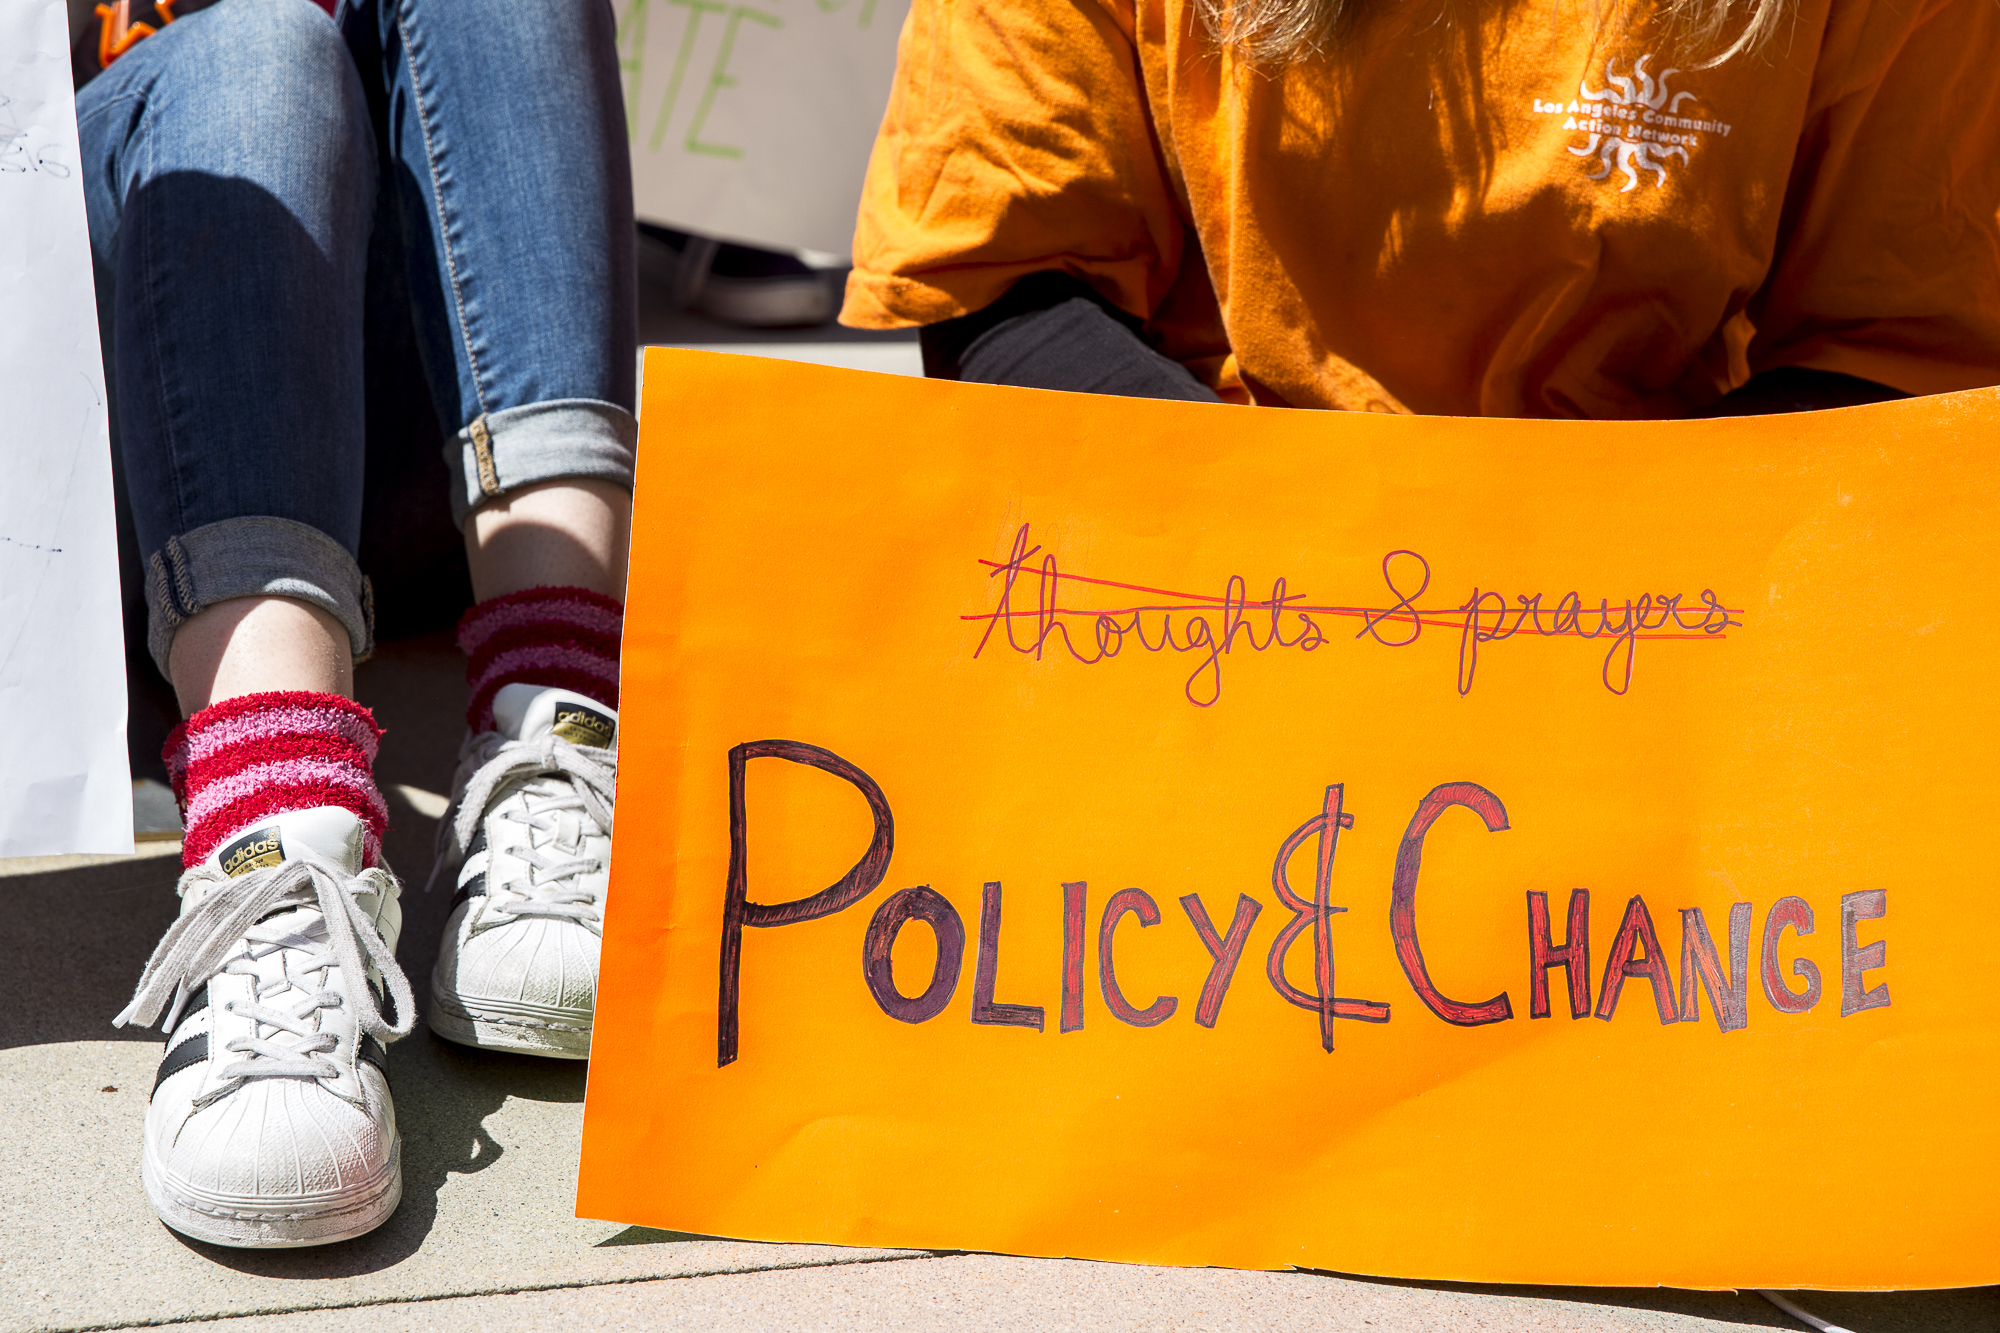 Several hundred students from area high schools and middle schools converged on Santa Monica City Hall in protest against all forms of gun violence, also marking the 19th anniversary of the Columbine High School massacre in Santa Monica, California on Friday, April 20 2018. (Matthew Martin/Corsair Photo)